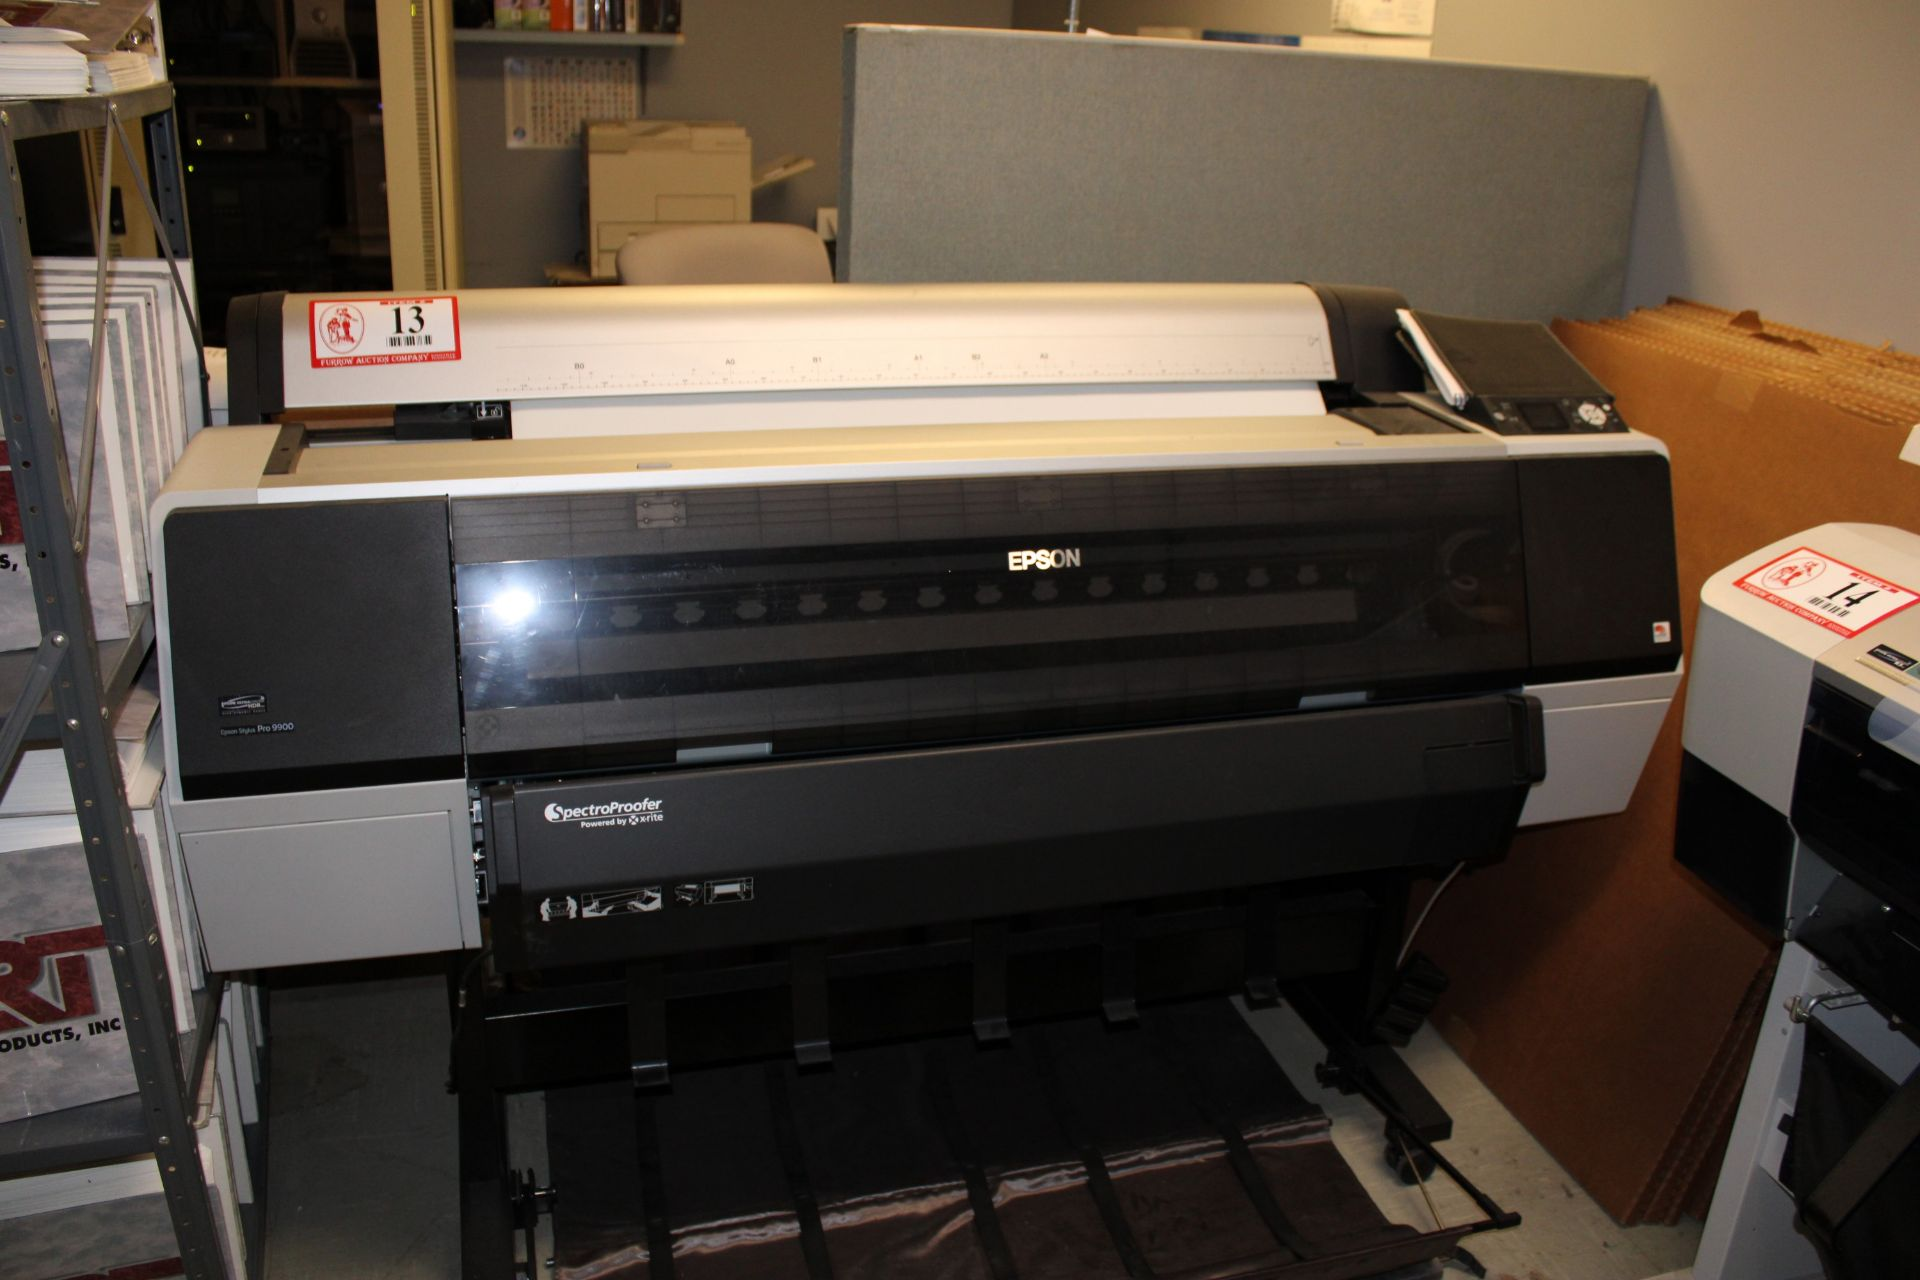 Lot 13 - EPSON Stylus Pro 9900 Wide Format Printer w/ Spectral Proofer Powered by X-Rite